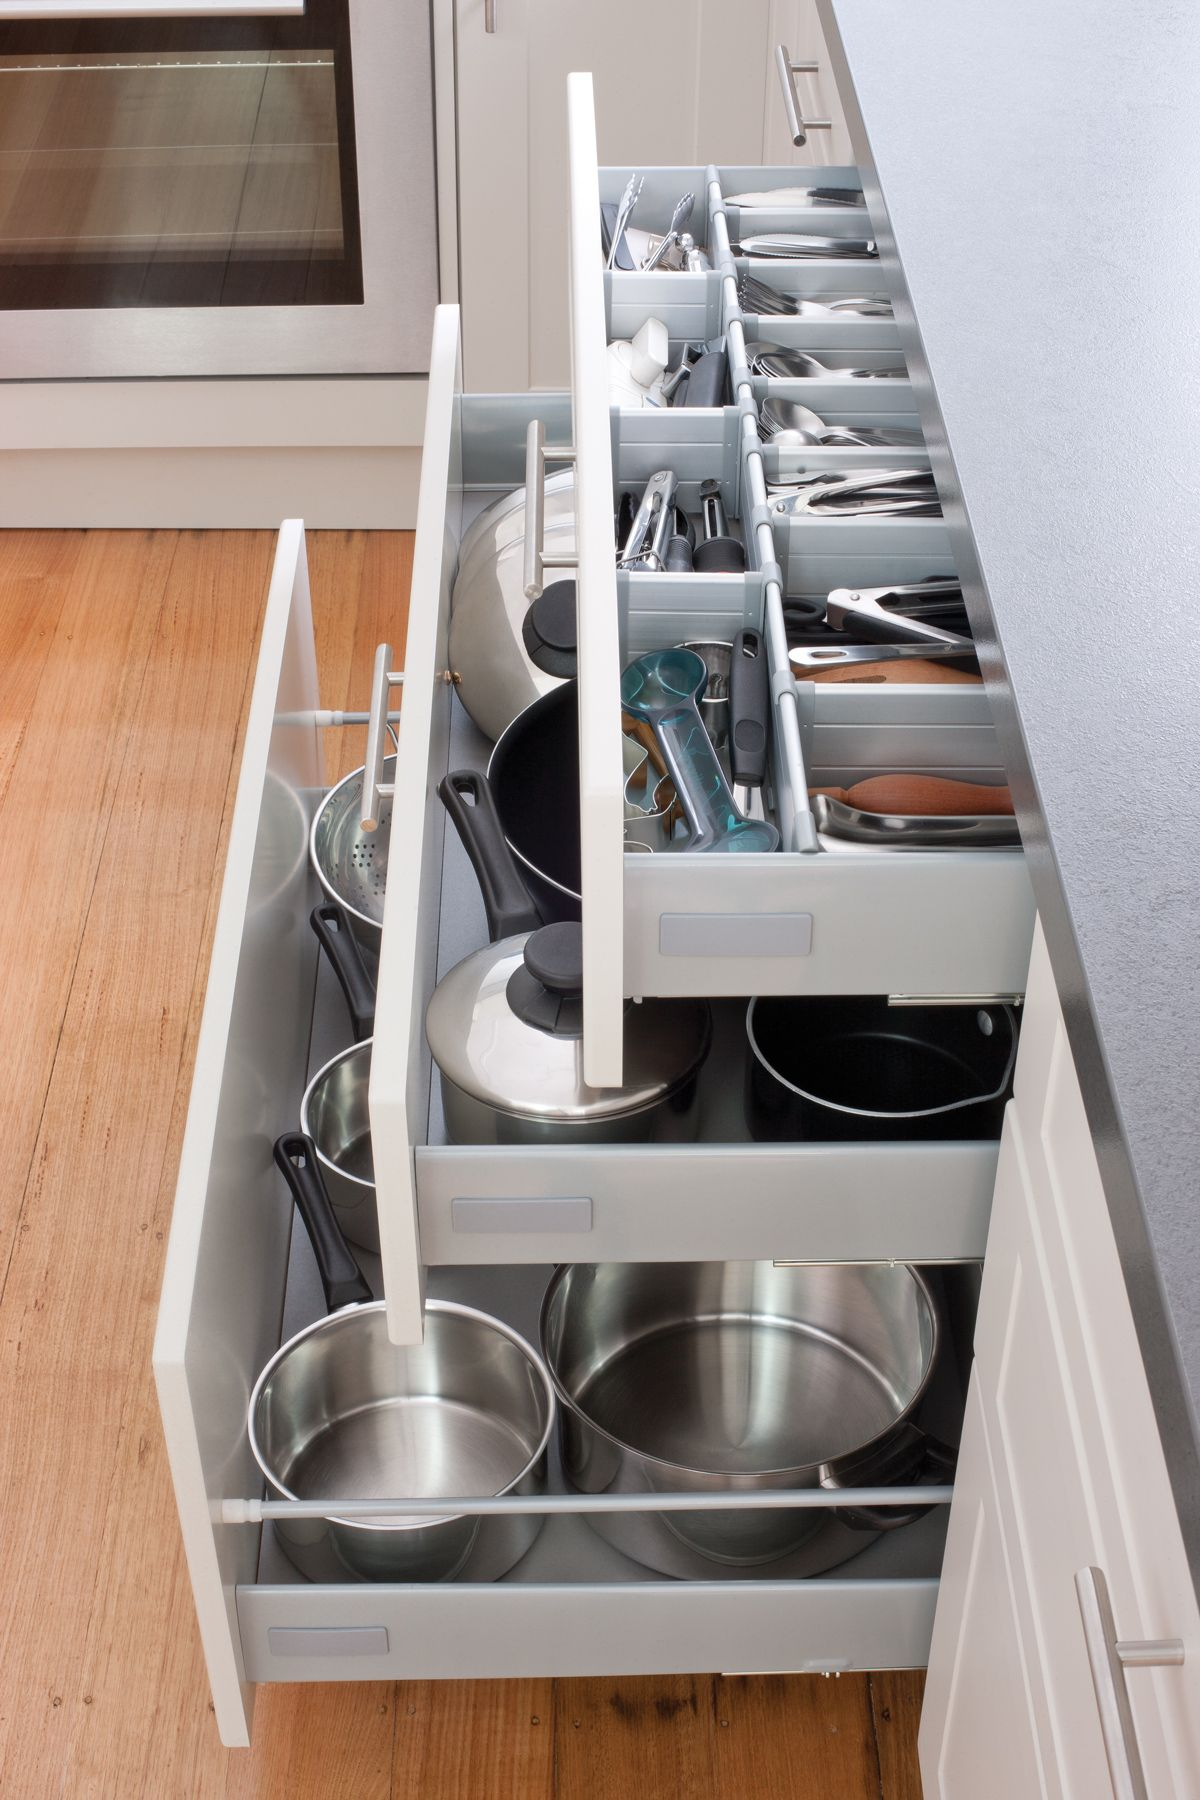 Additional-drawers-are-now-in-demand-kitchen-cabinet-styles-and-layouts